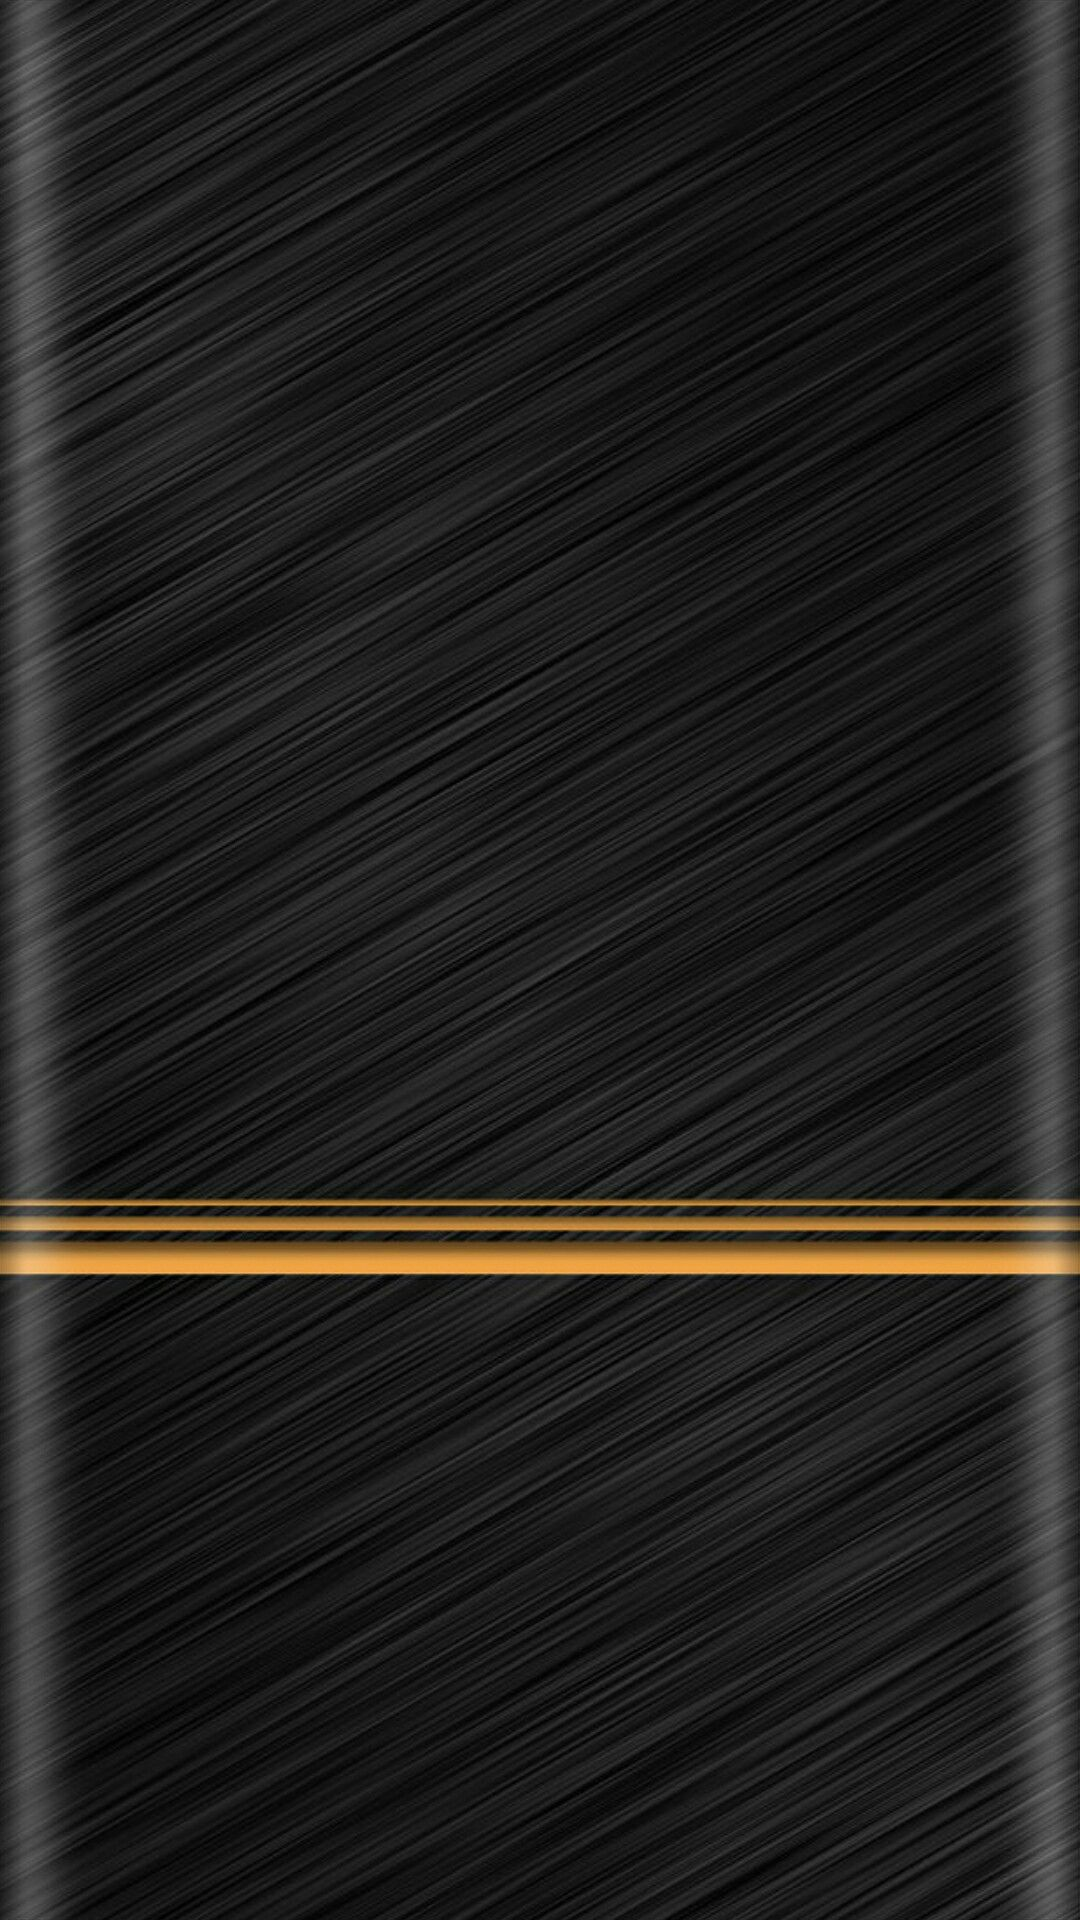 Popular Wallpaper Home Screen Background - a6ffa007e7aeb1d23705c3b234ad0111  Collection_486570.jpg